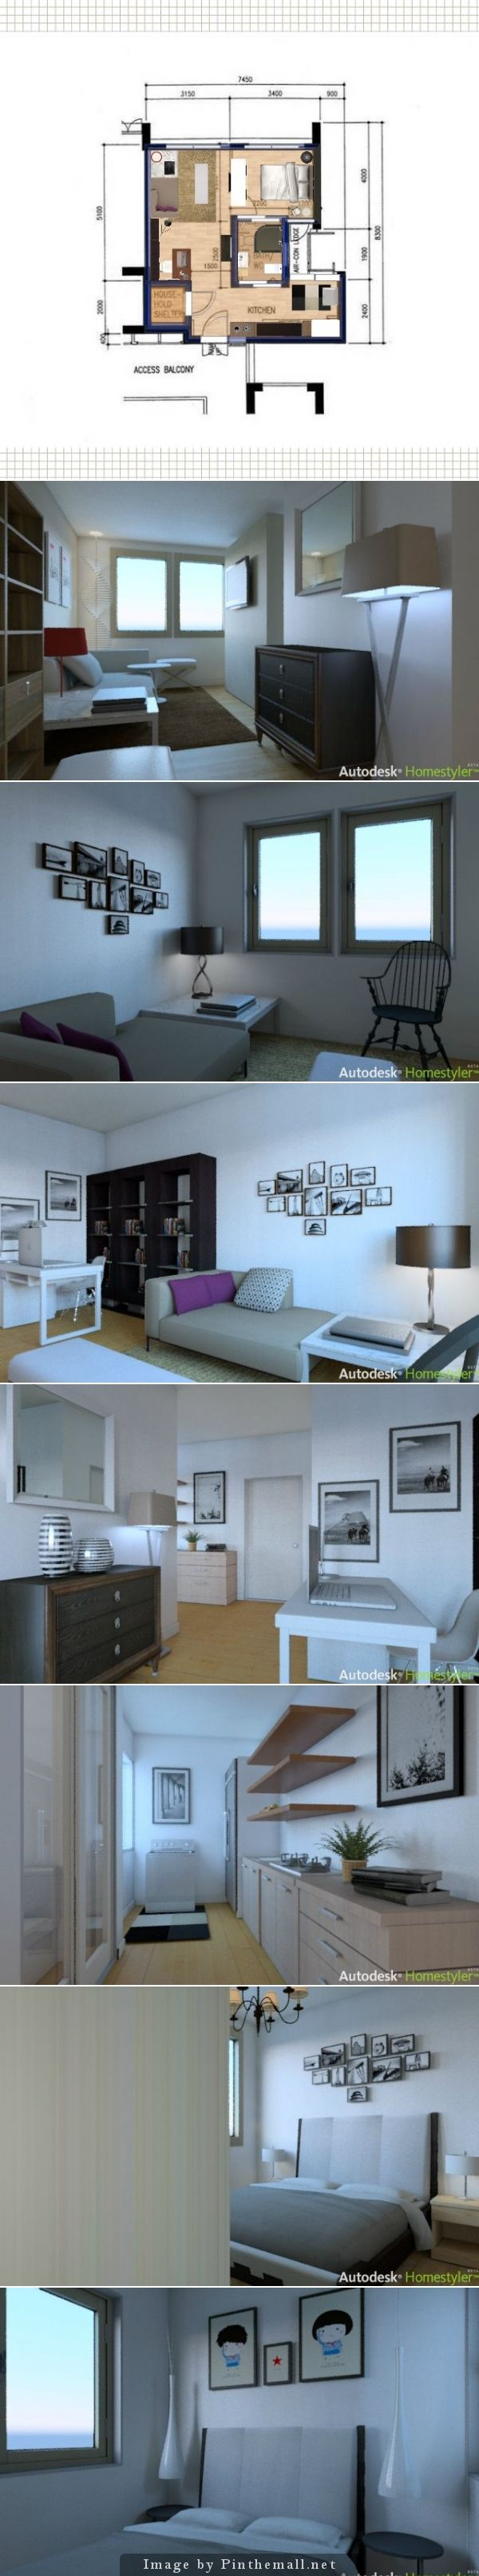 Hdb 2 Room Bto At Sengkang Fernvale Lea Also Design By Ssphere Online Design Magazine Apartment Layout Bedroom House Plans 1 Bedroom House